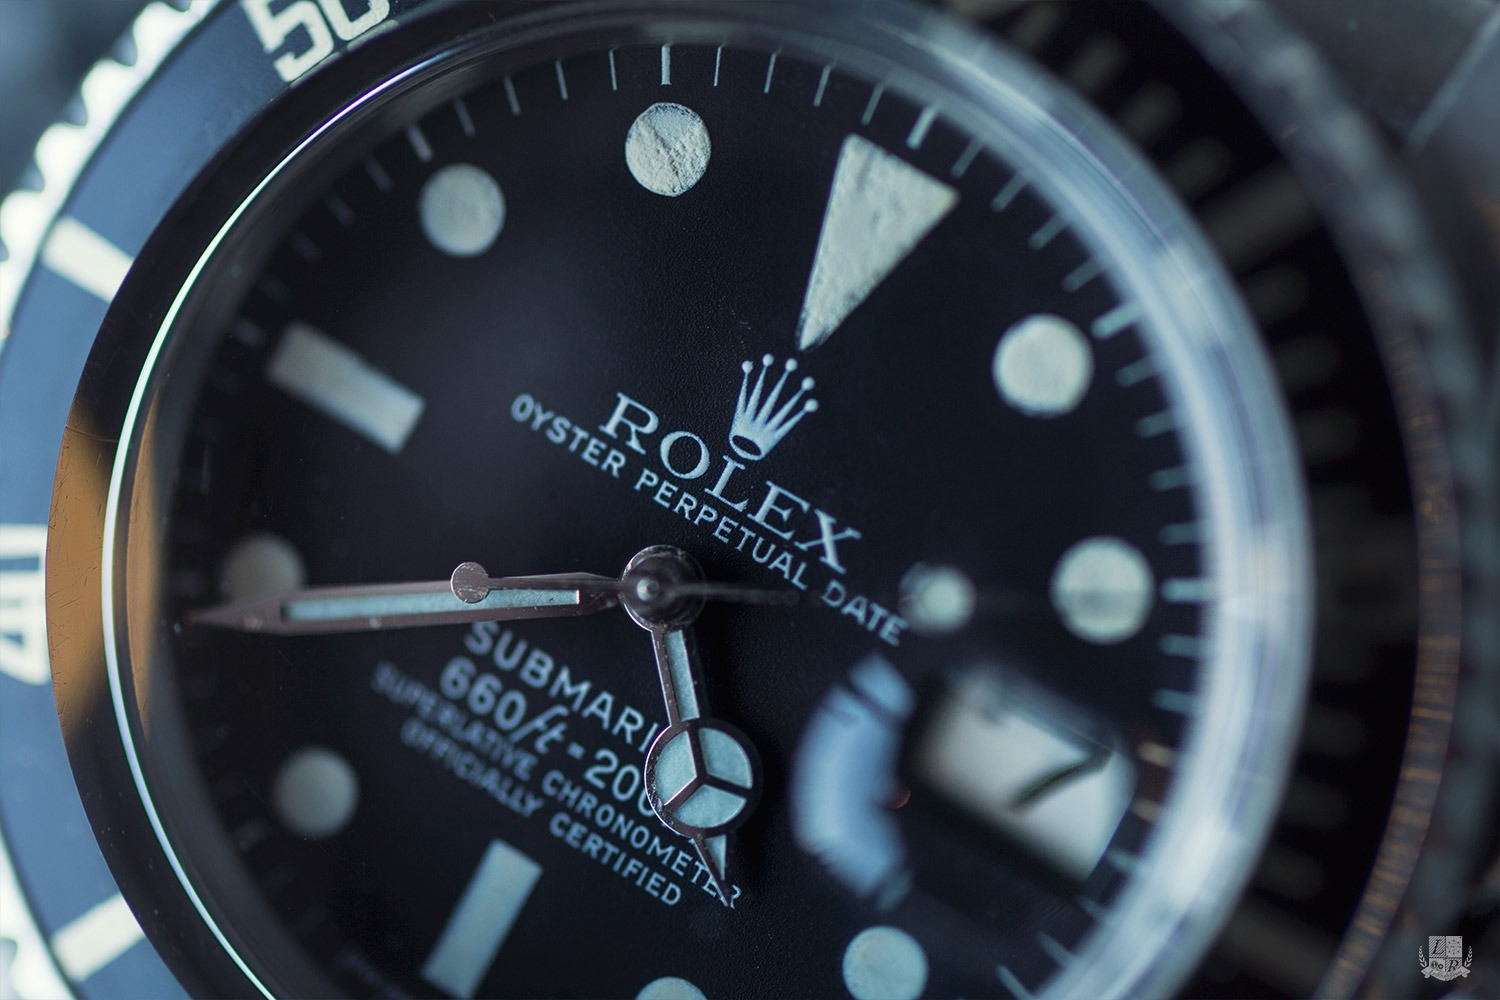 Rolex Vintage Submariner 1680 - Focus